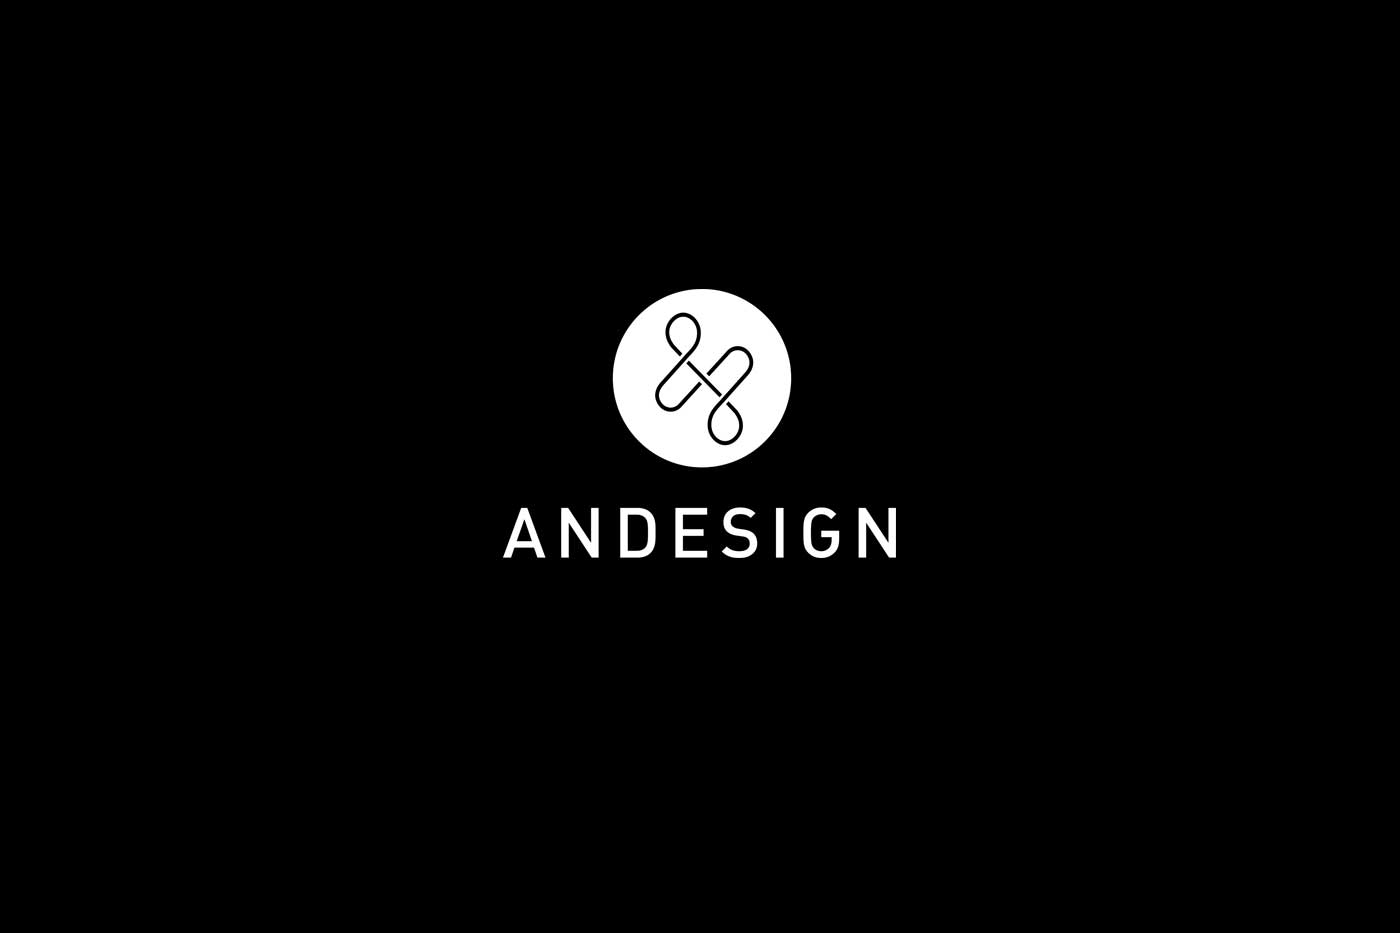 ampersand-line-logo-industrial-design-firm-by-nice-logos